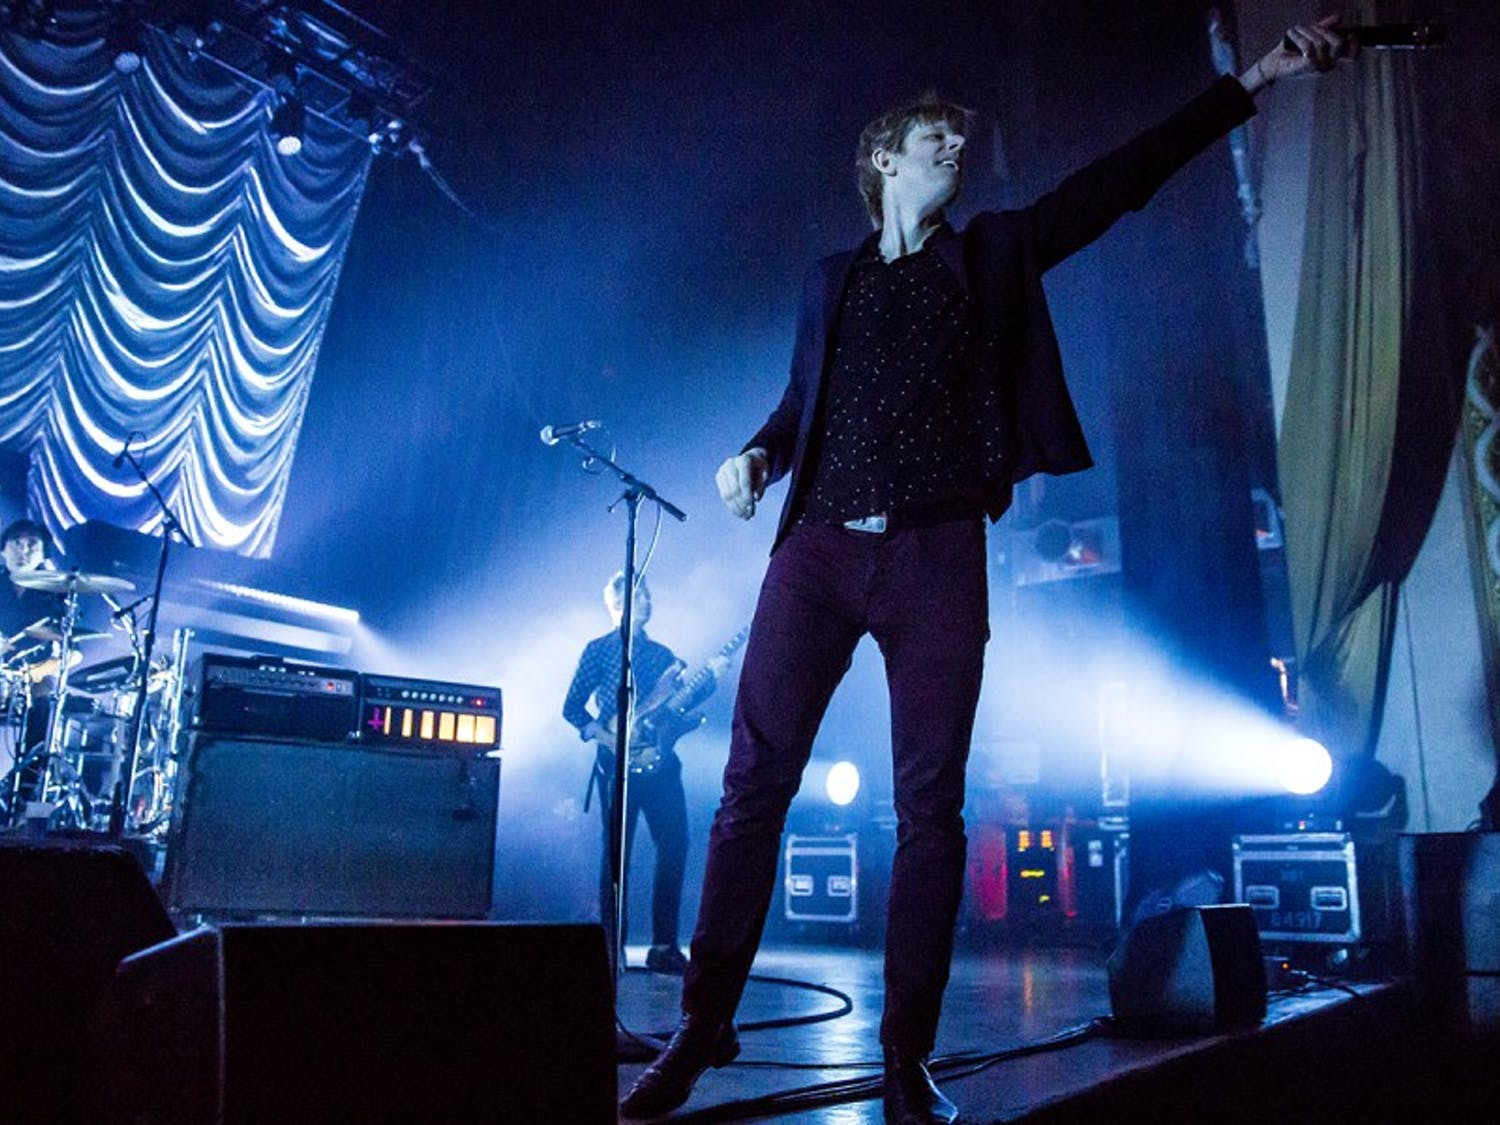 Spoon frontman Britt Daniel played both old and new fan-favorite songs at the Orpheum on Thursday.